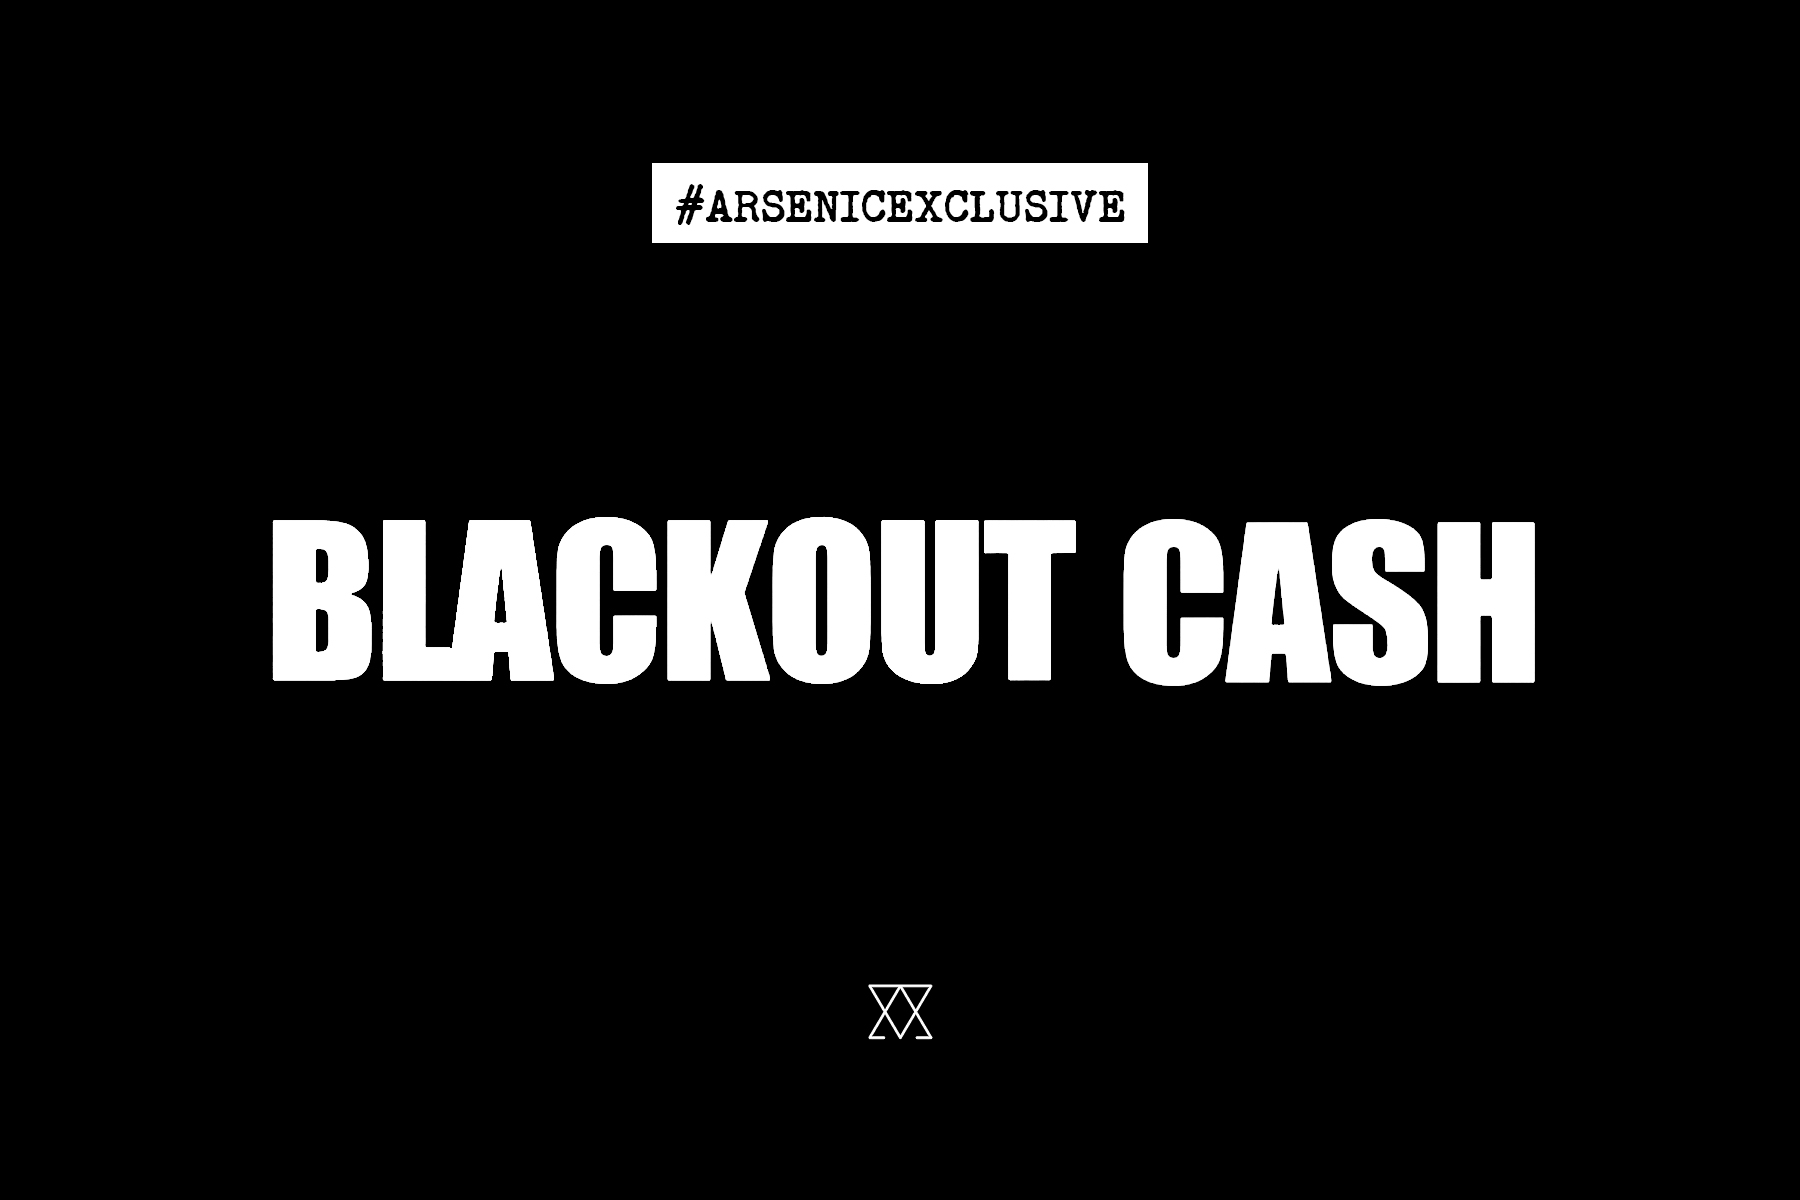 Graphic designed anticipate the release of a music video by Blackout Cash.